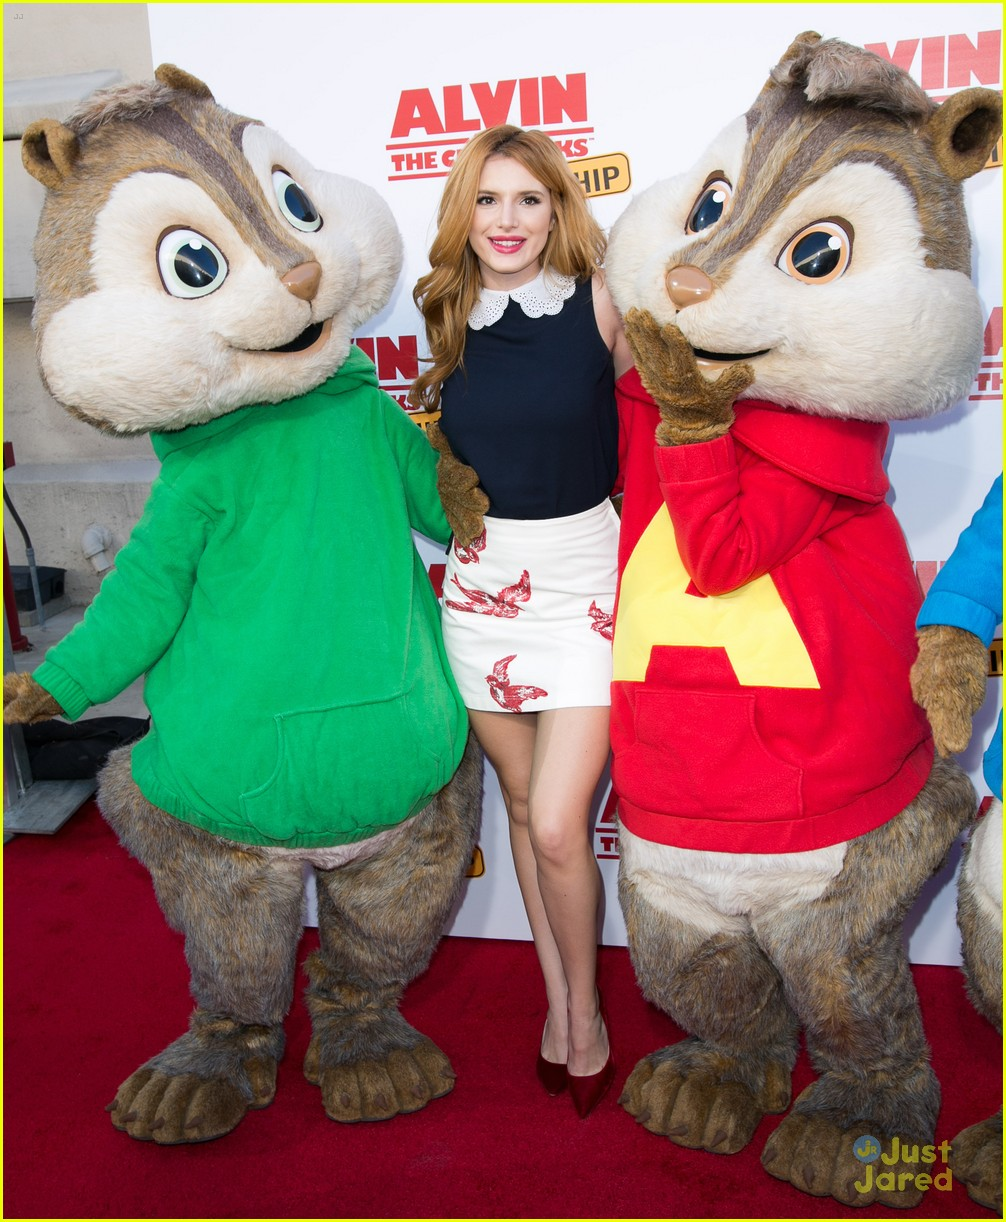 Bella Thorne Hangs With Alvin Simon Theodore At The Road Chip Premiere Photo 905394 Bella Thorne Pictures Just Jared Jr